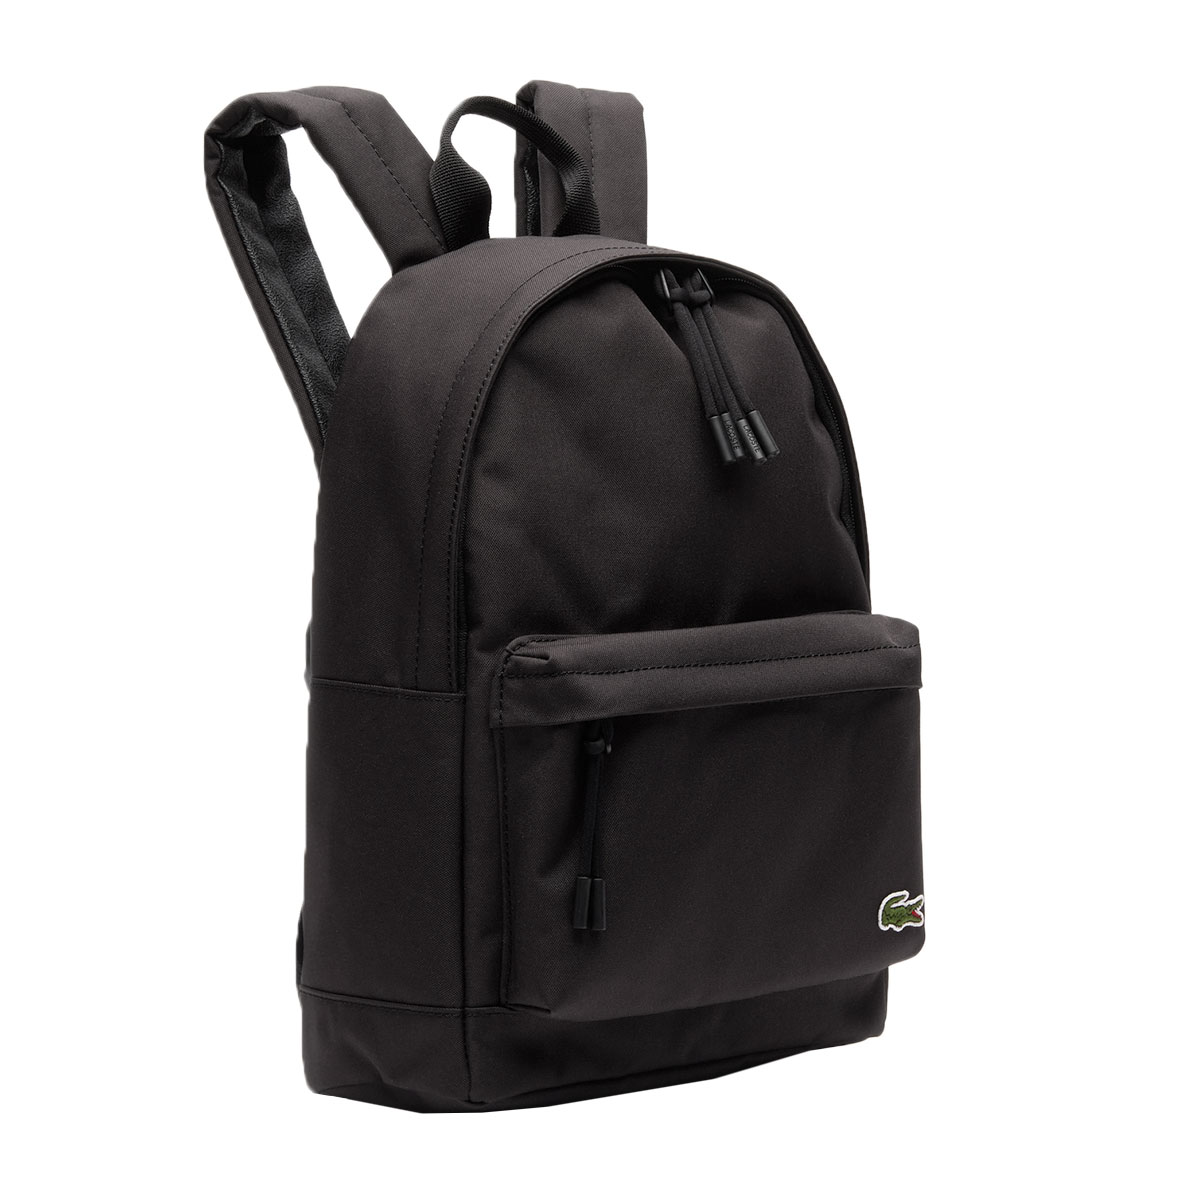 b1a62d383f50e5 Lacoste Neocroc S Backpack Black for sale online